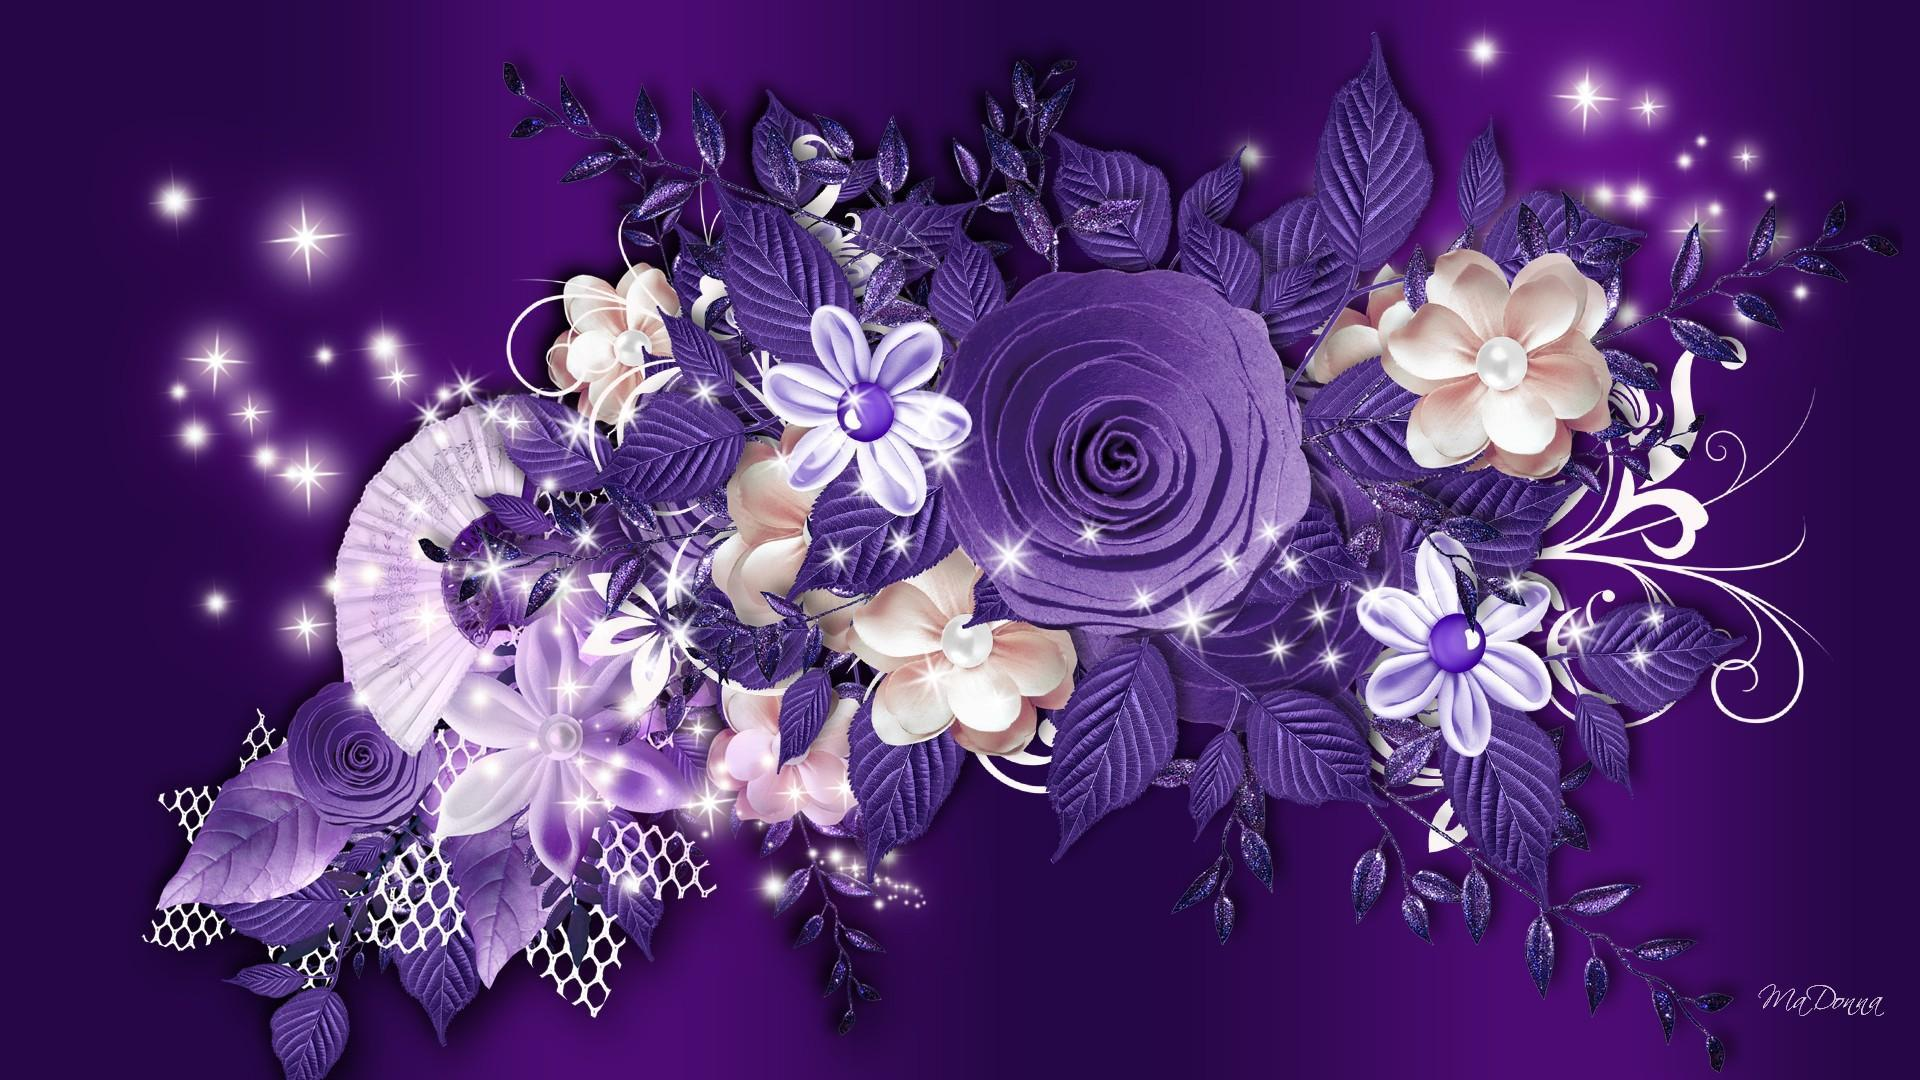 Purple Roses Background Images: [44+] Purple Roses Background Wallpaper On WallpaperSafari